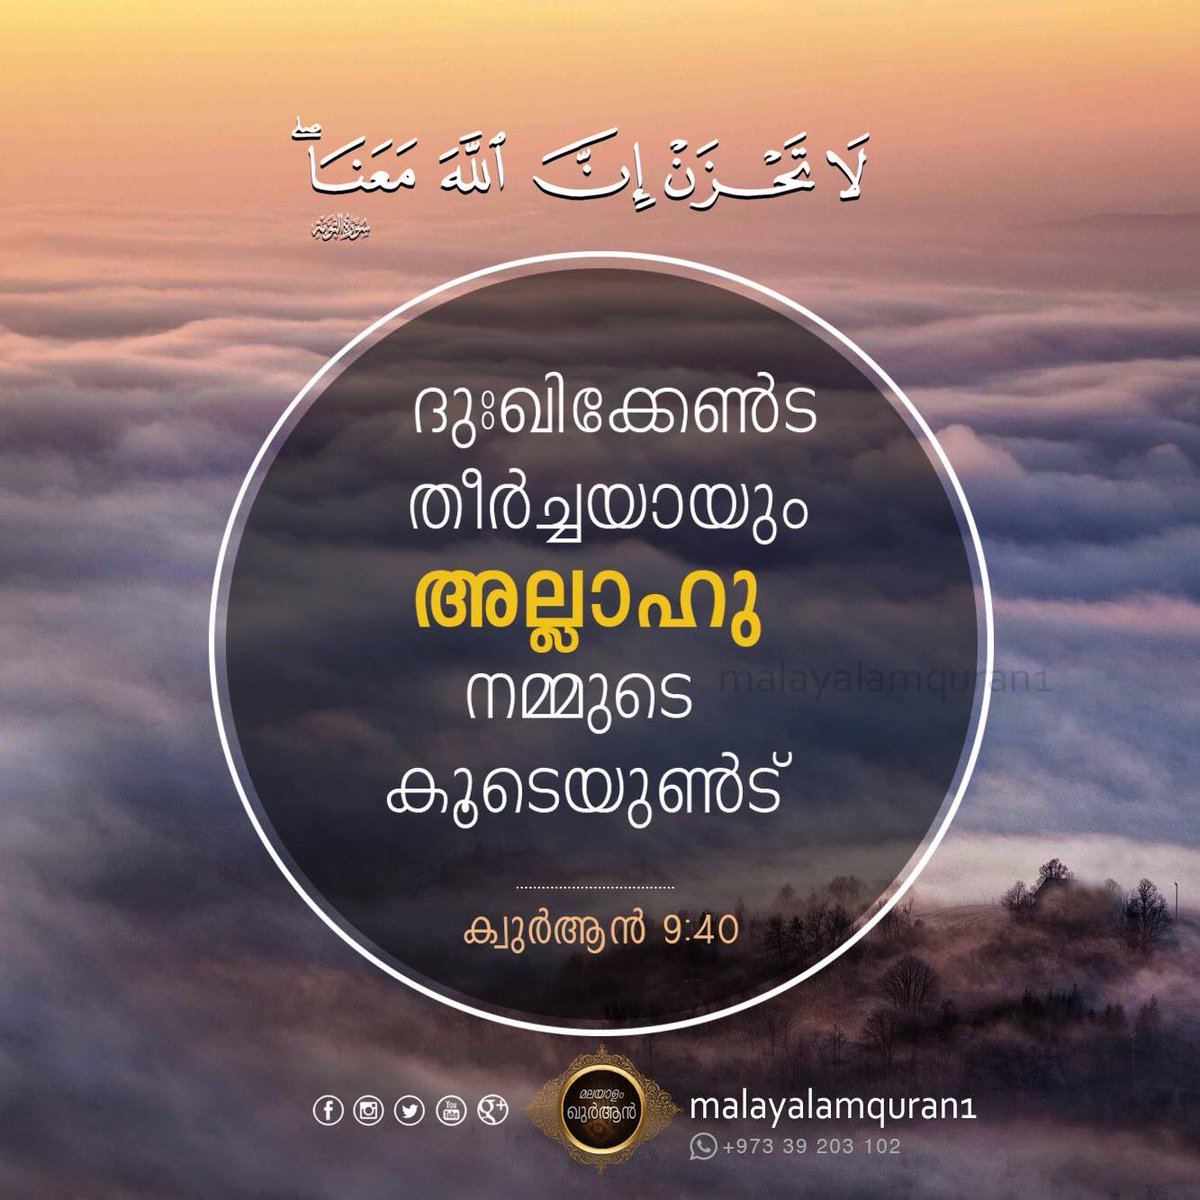 P Os Of The Islamic Quotes And Images In Malayalam